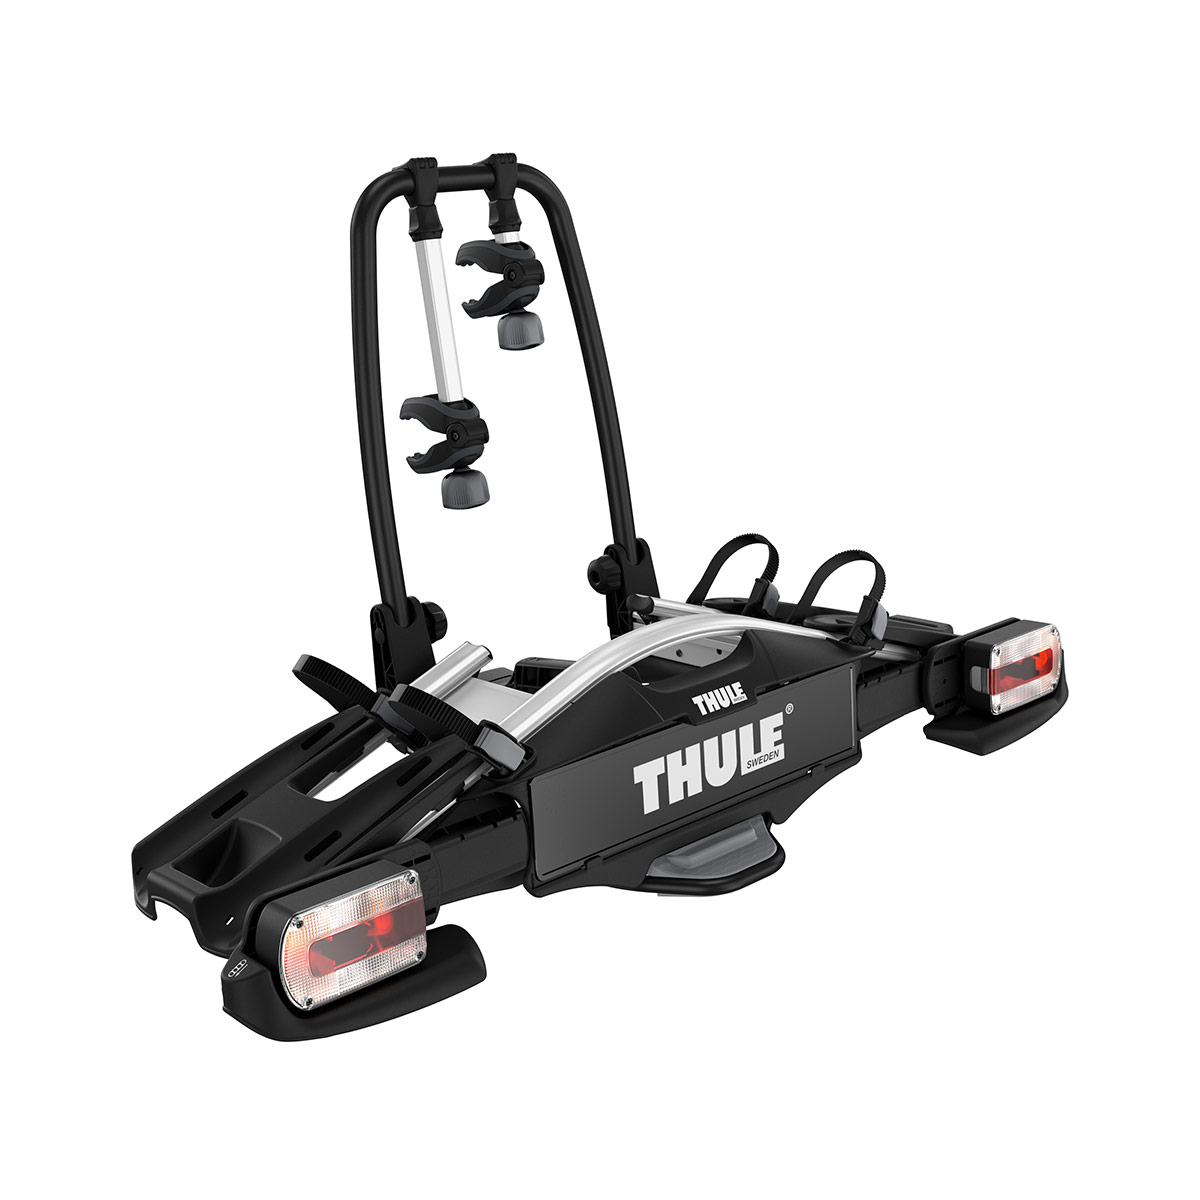 Thule bike rack VeloCompact 2 7-pin